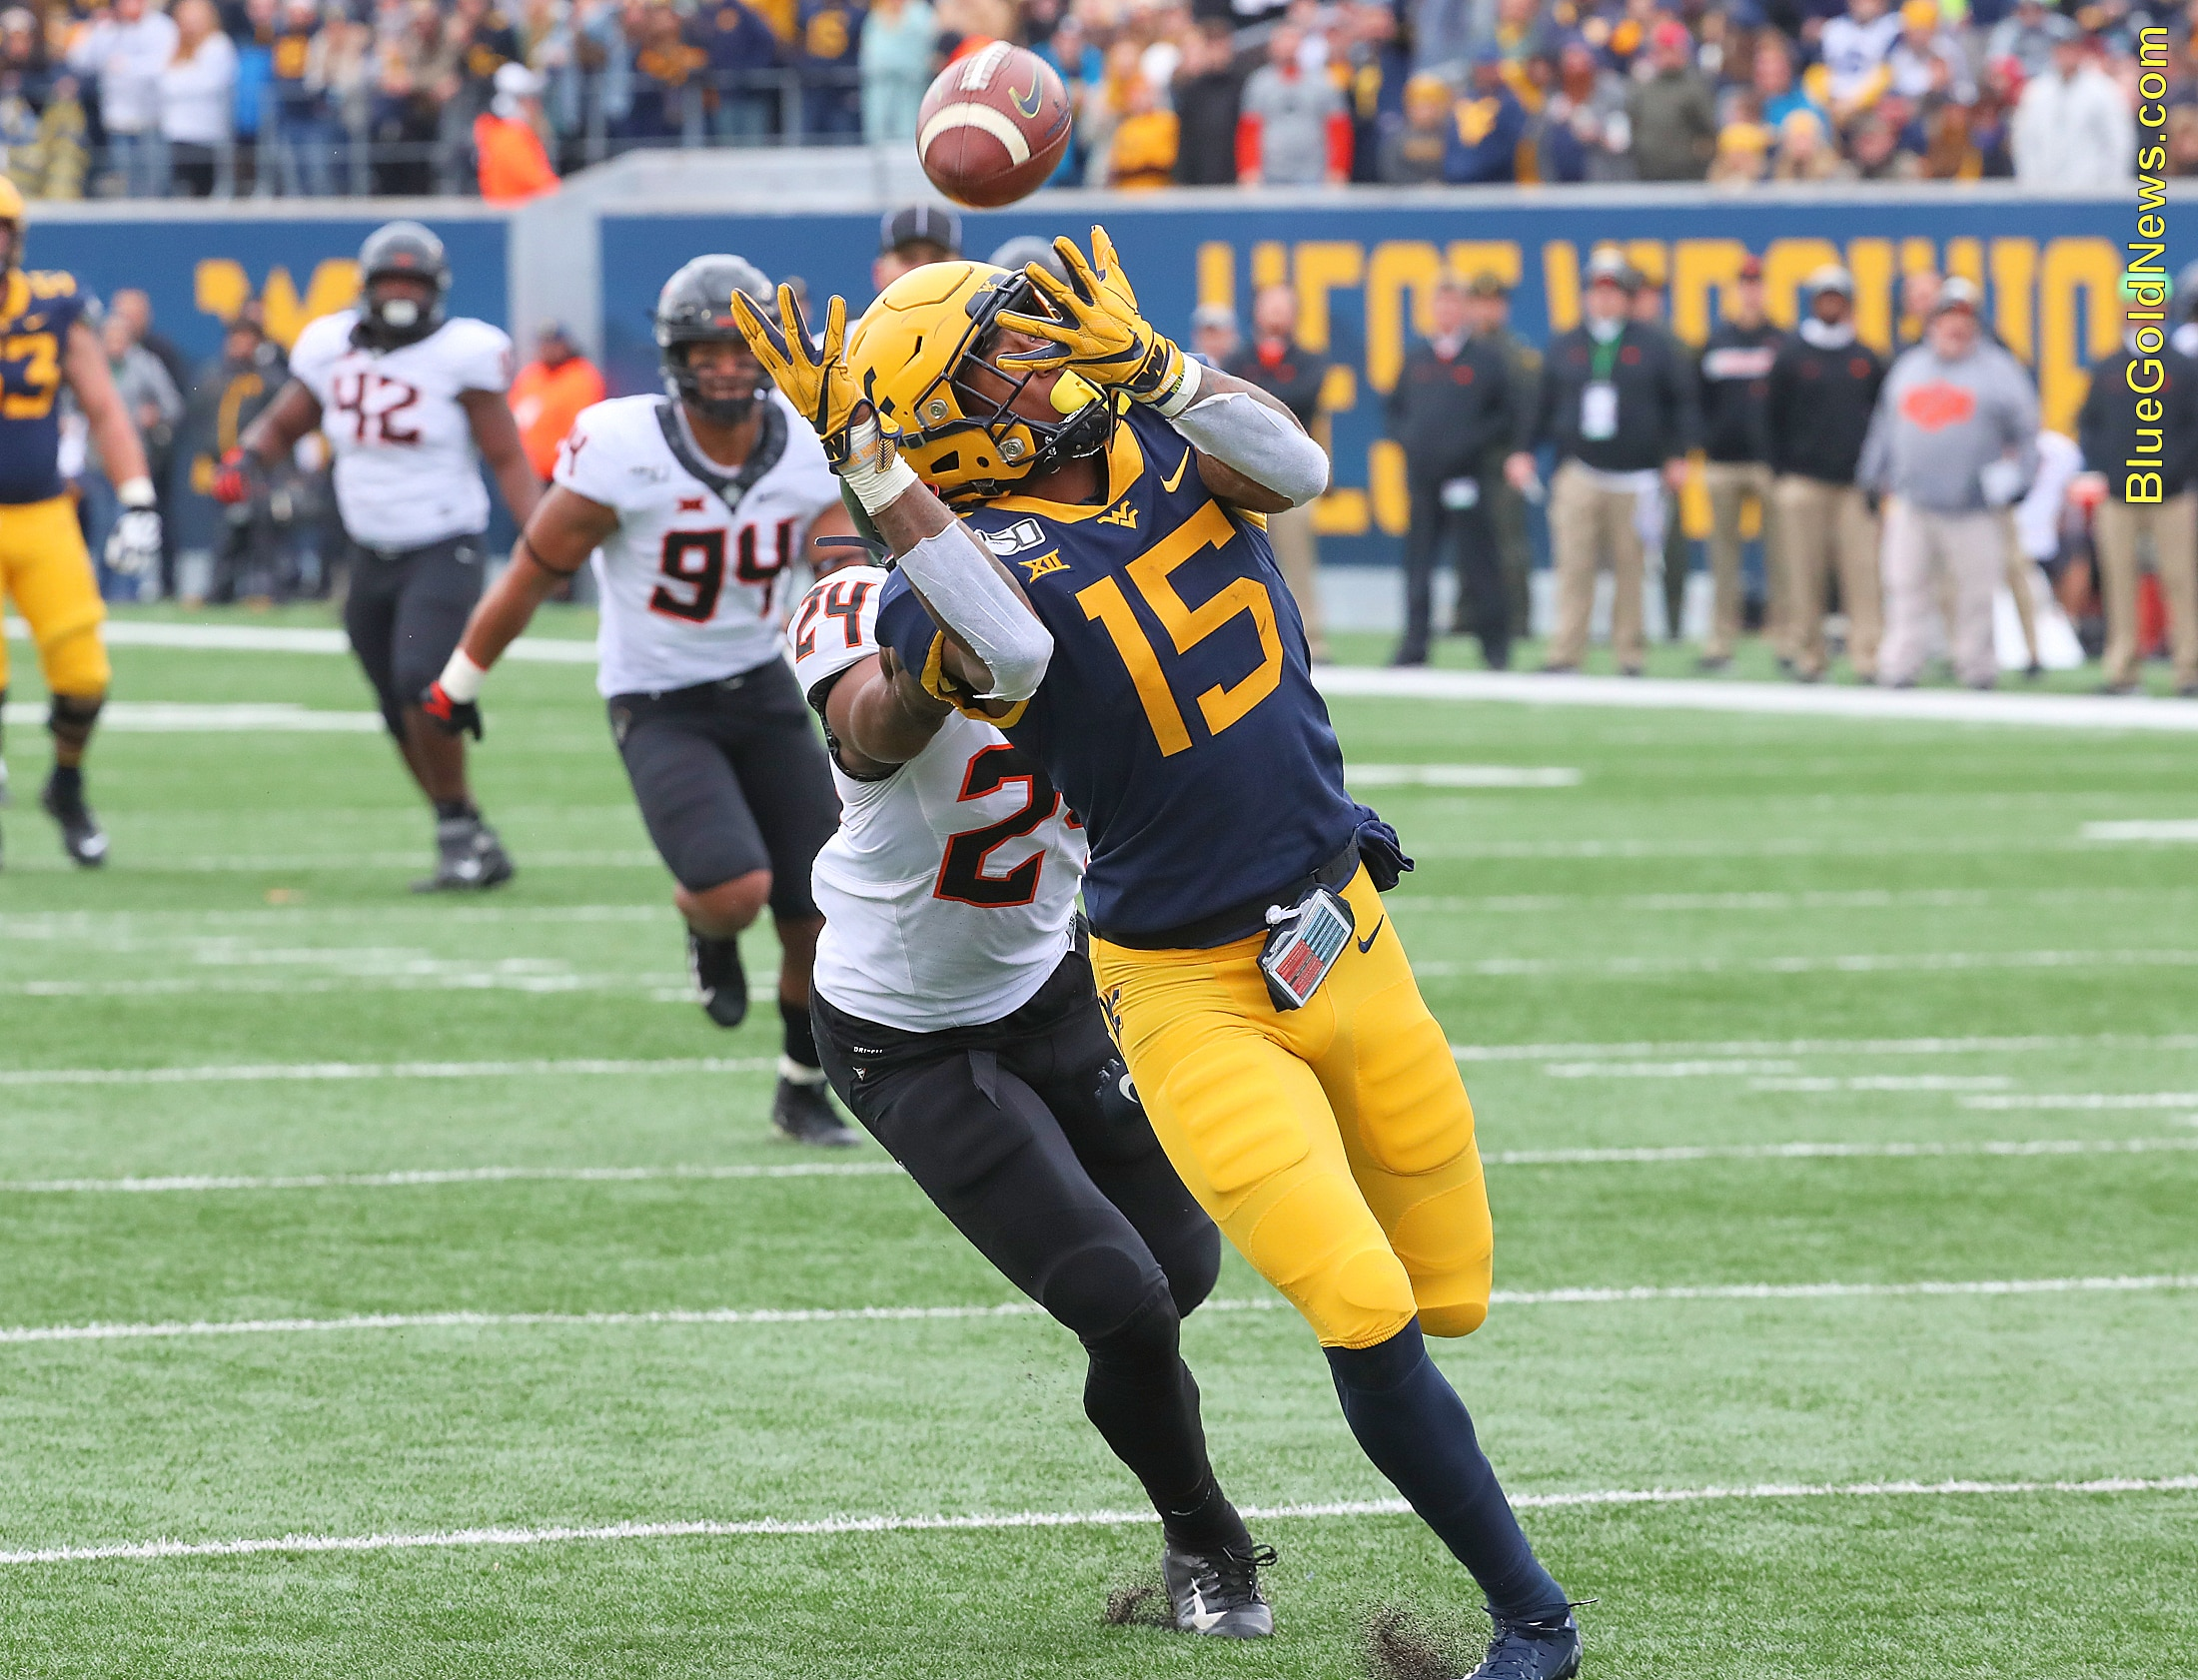 West Virginia receiver George Campbell hauls in a 34-yard touchdown reception